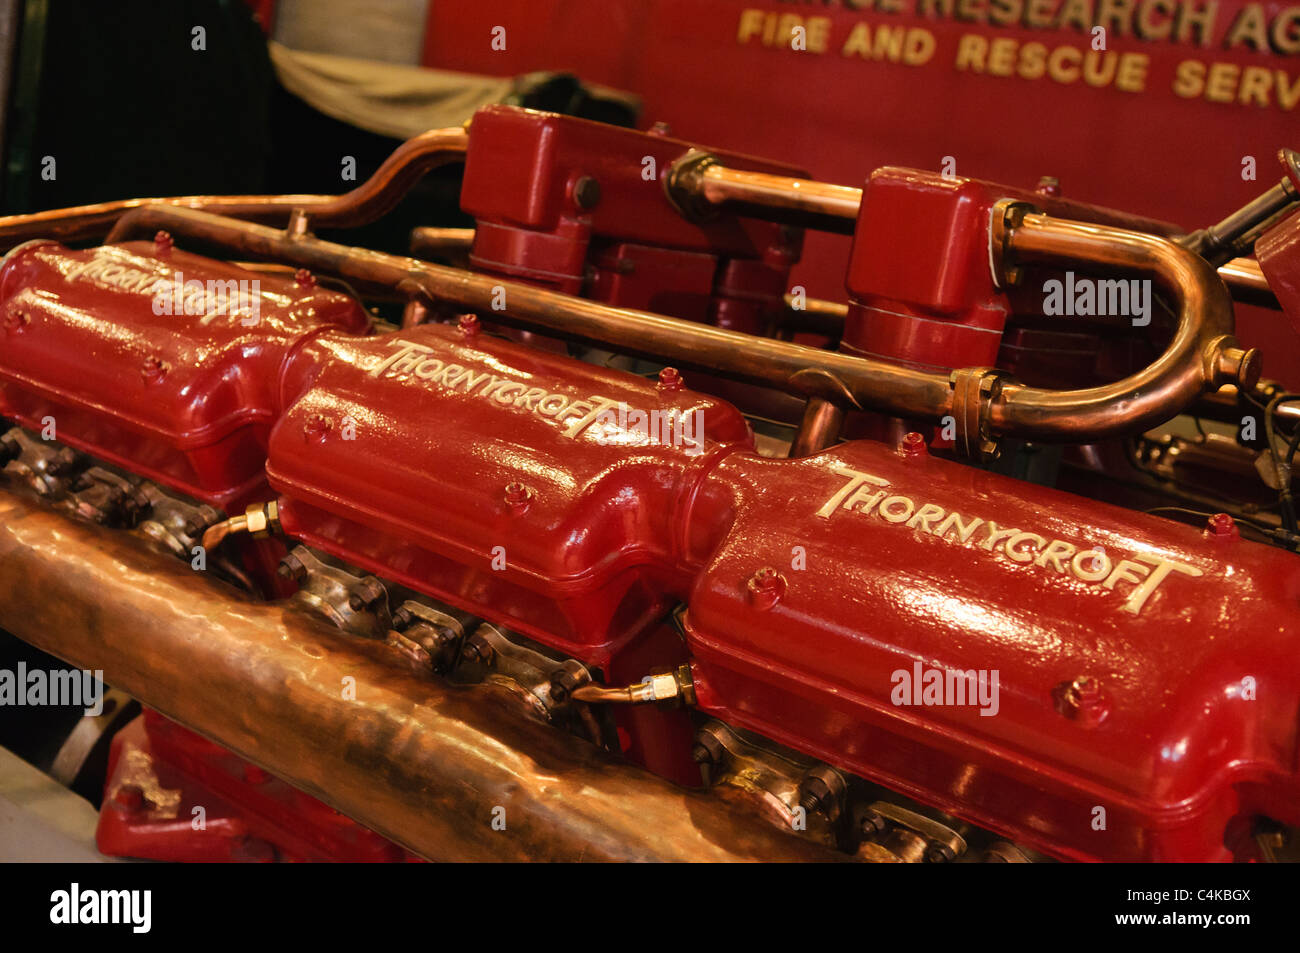 Thornycroft engine from an old fire engine Stock Photo